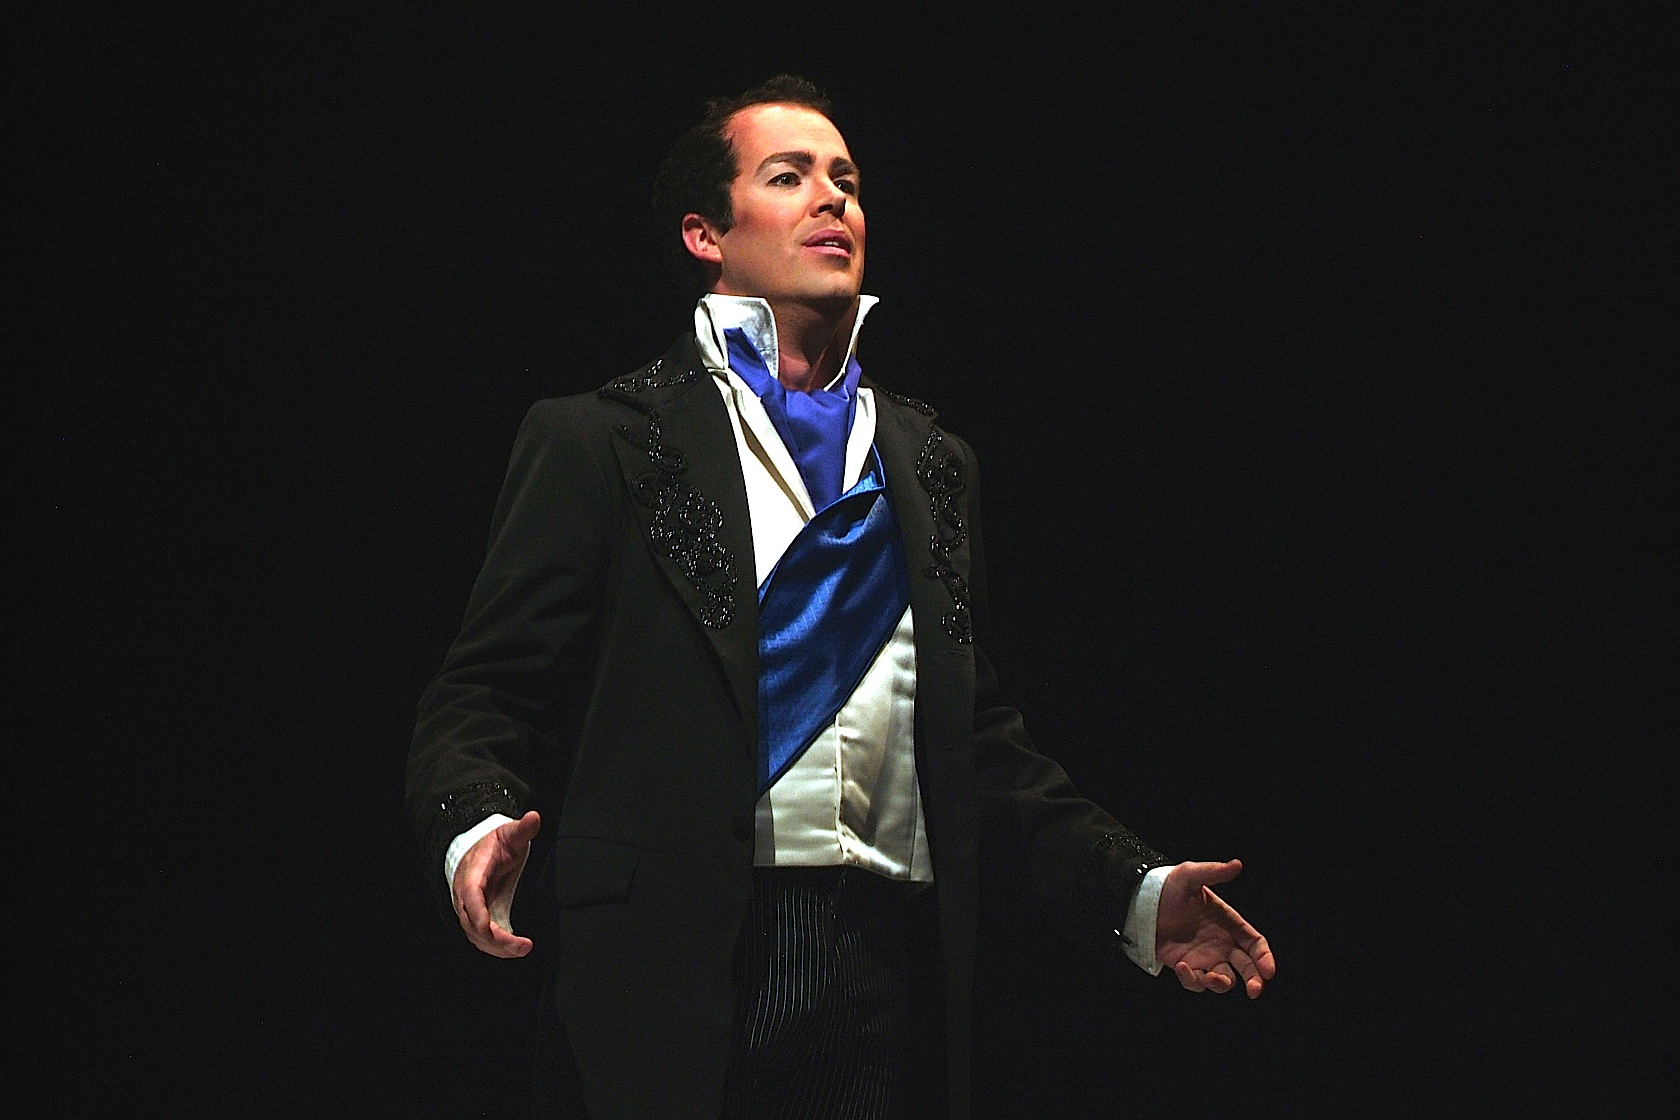 Vale Rideout as Prince Charming